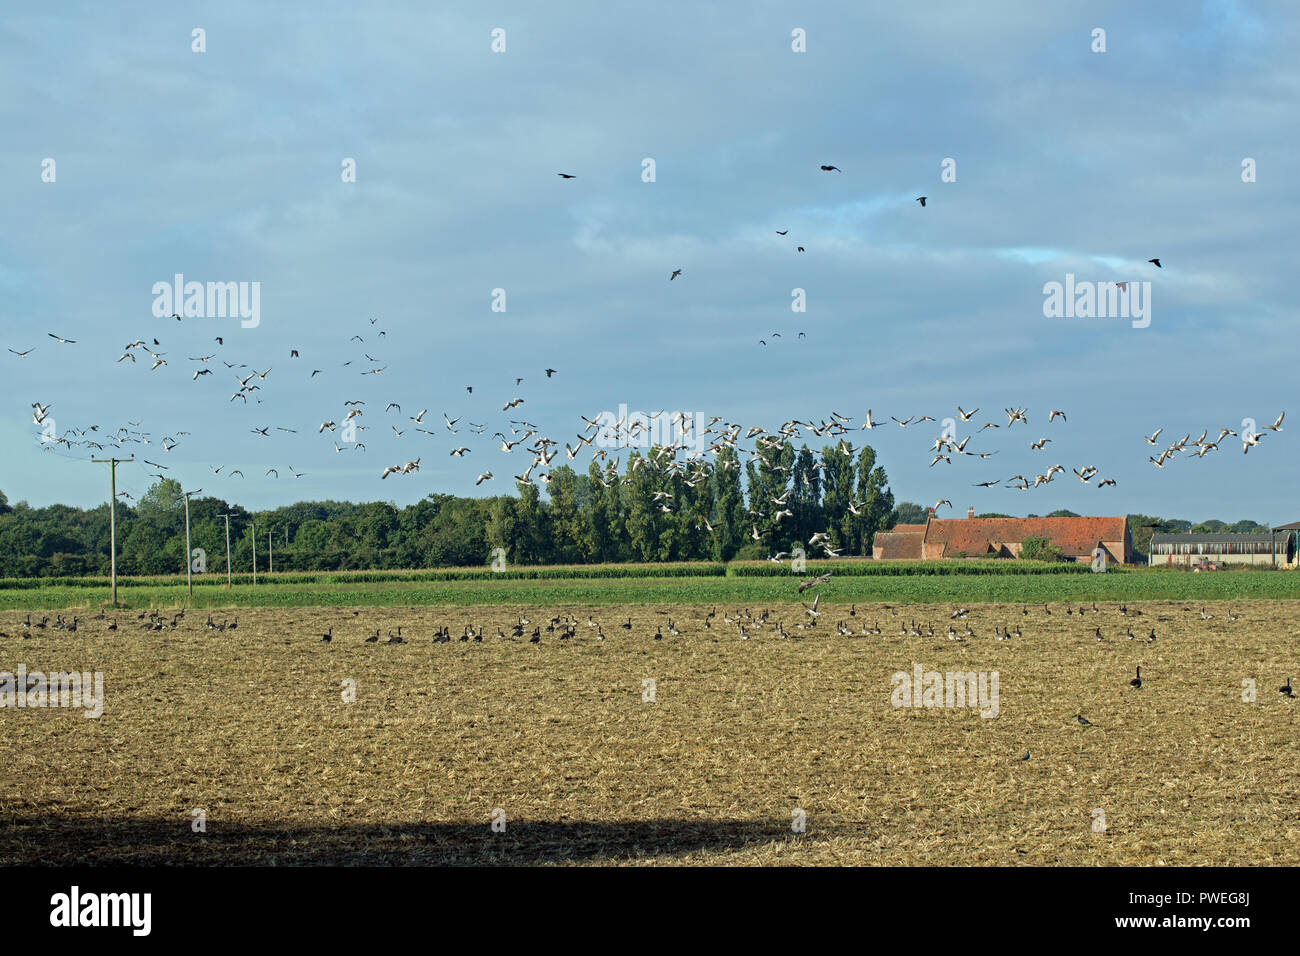 Greylag Geese (Anser anser) taking off in flight, with Canada Geese (Branta canadensis), remaining on the ground. All have been foraging on harvested cereal field. Commensal feeding; competition between native and naturalized bird species.​ - Stock Image